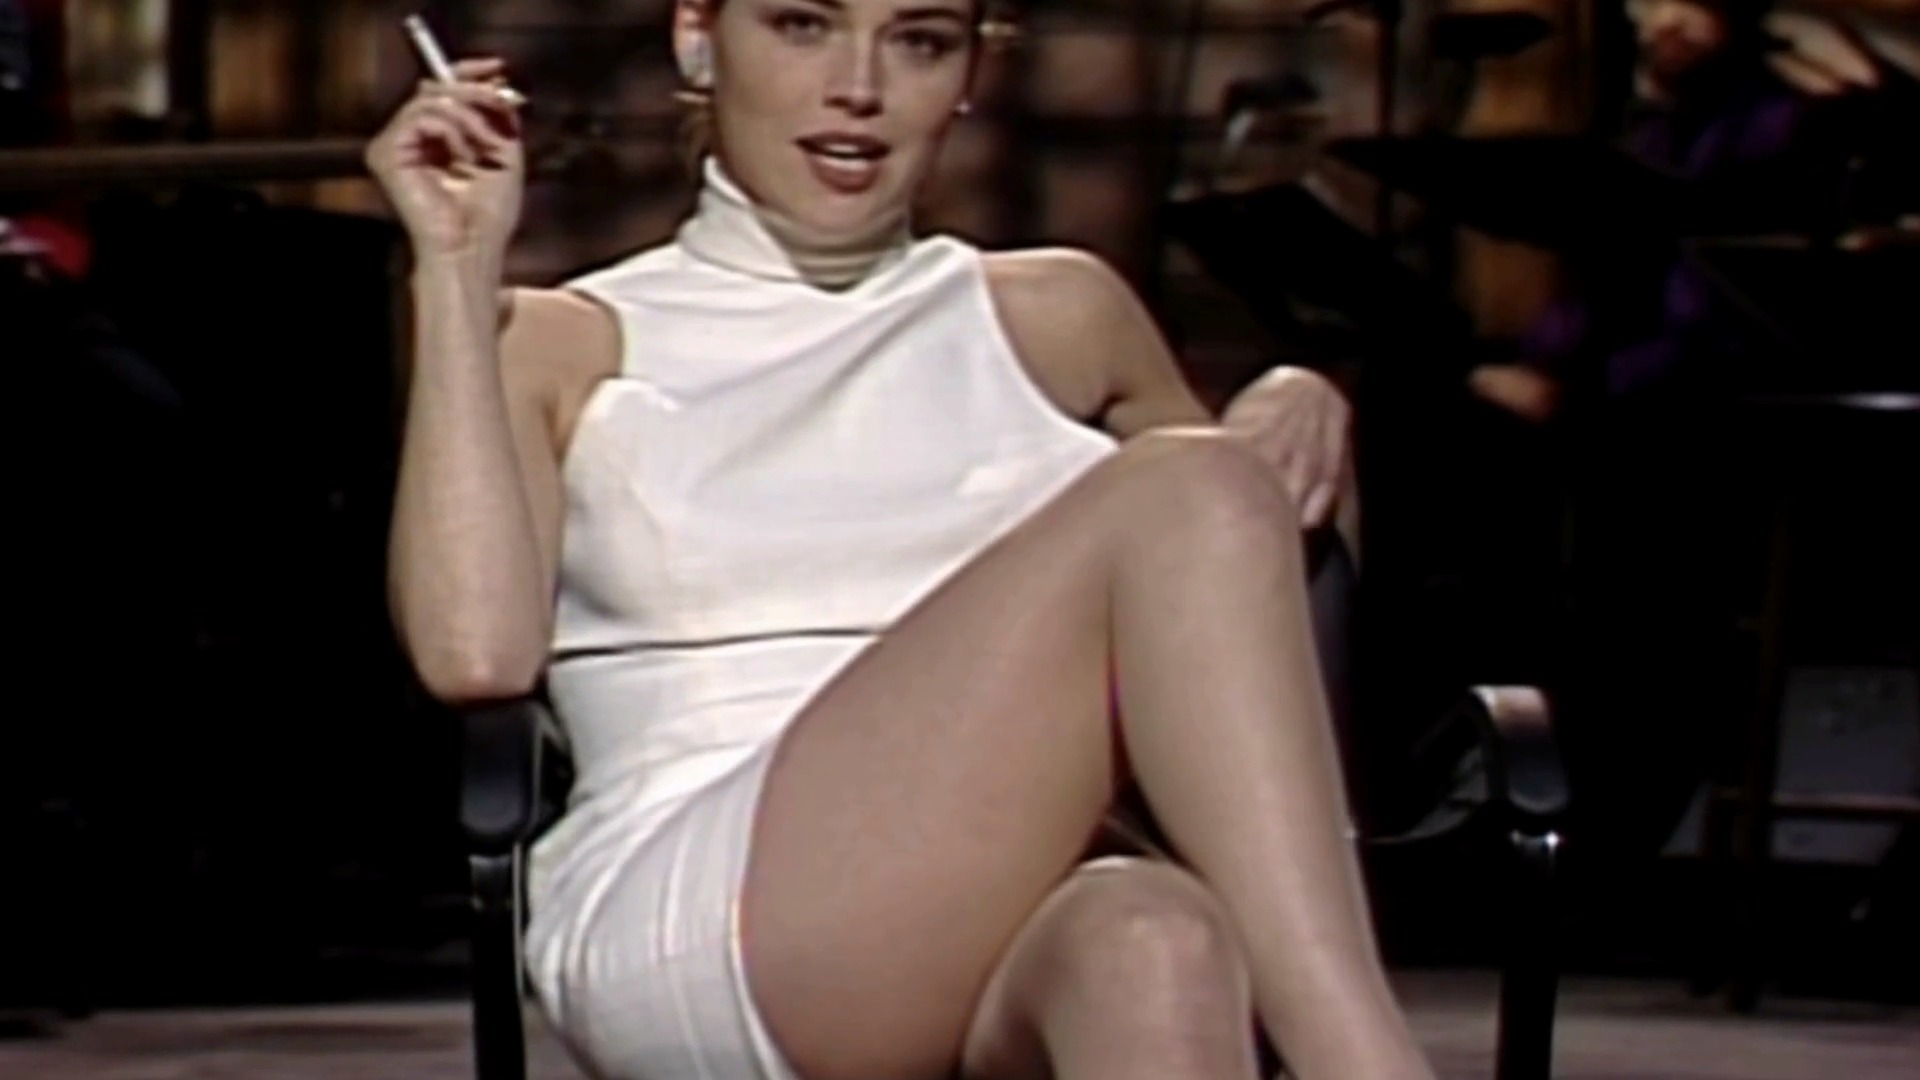 Sharon stone snl april 11 1992 9